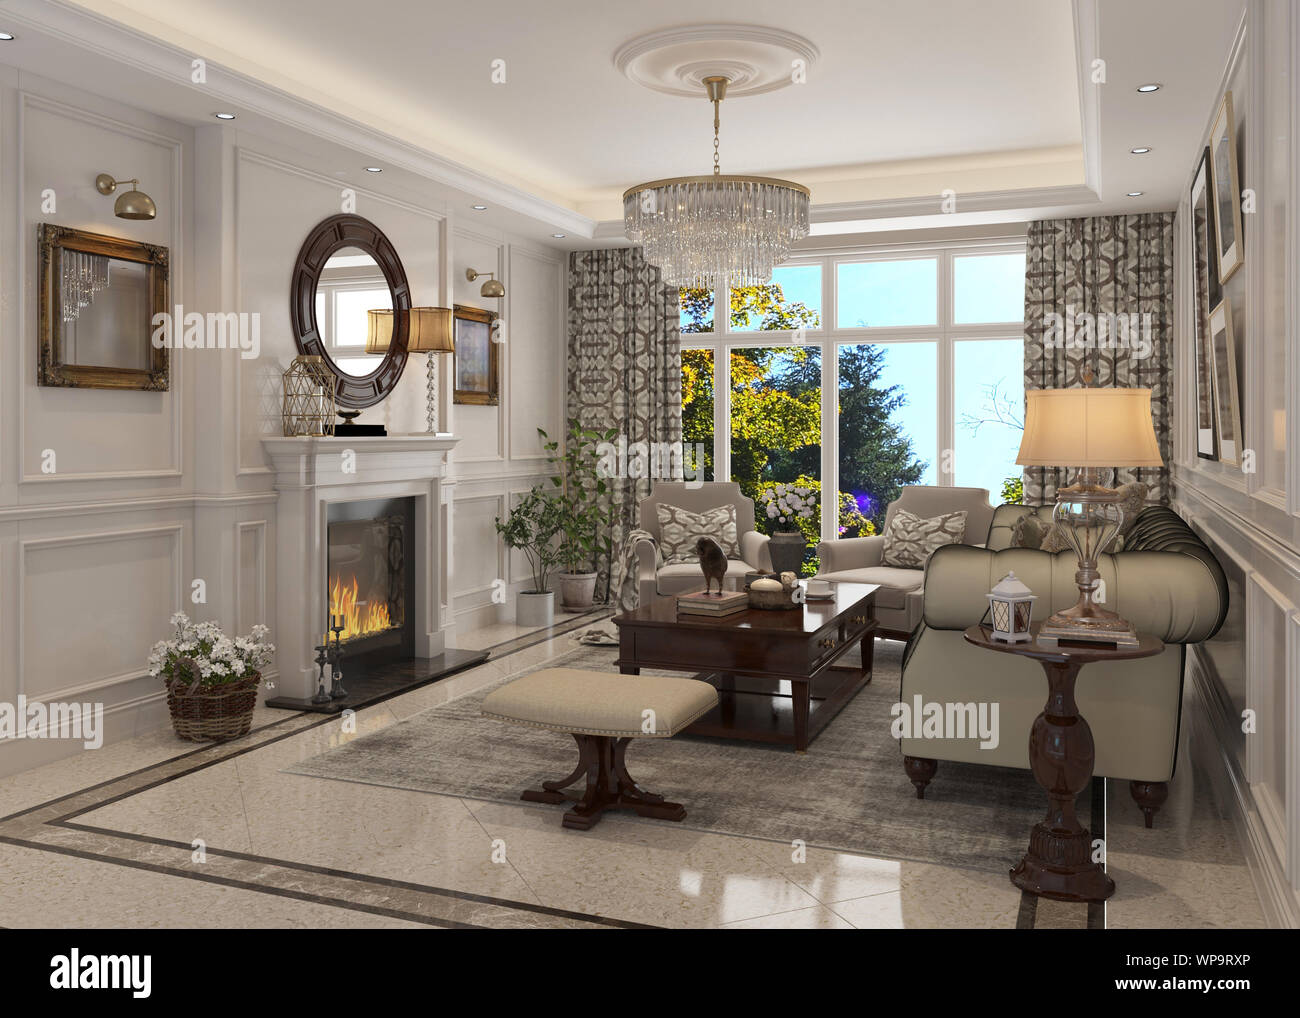 3d Illustration Living Room Interior In American Style Stock Photo Alamy